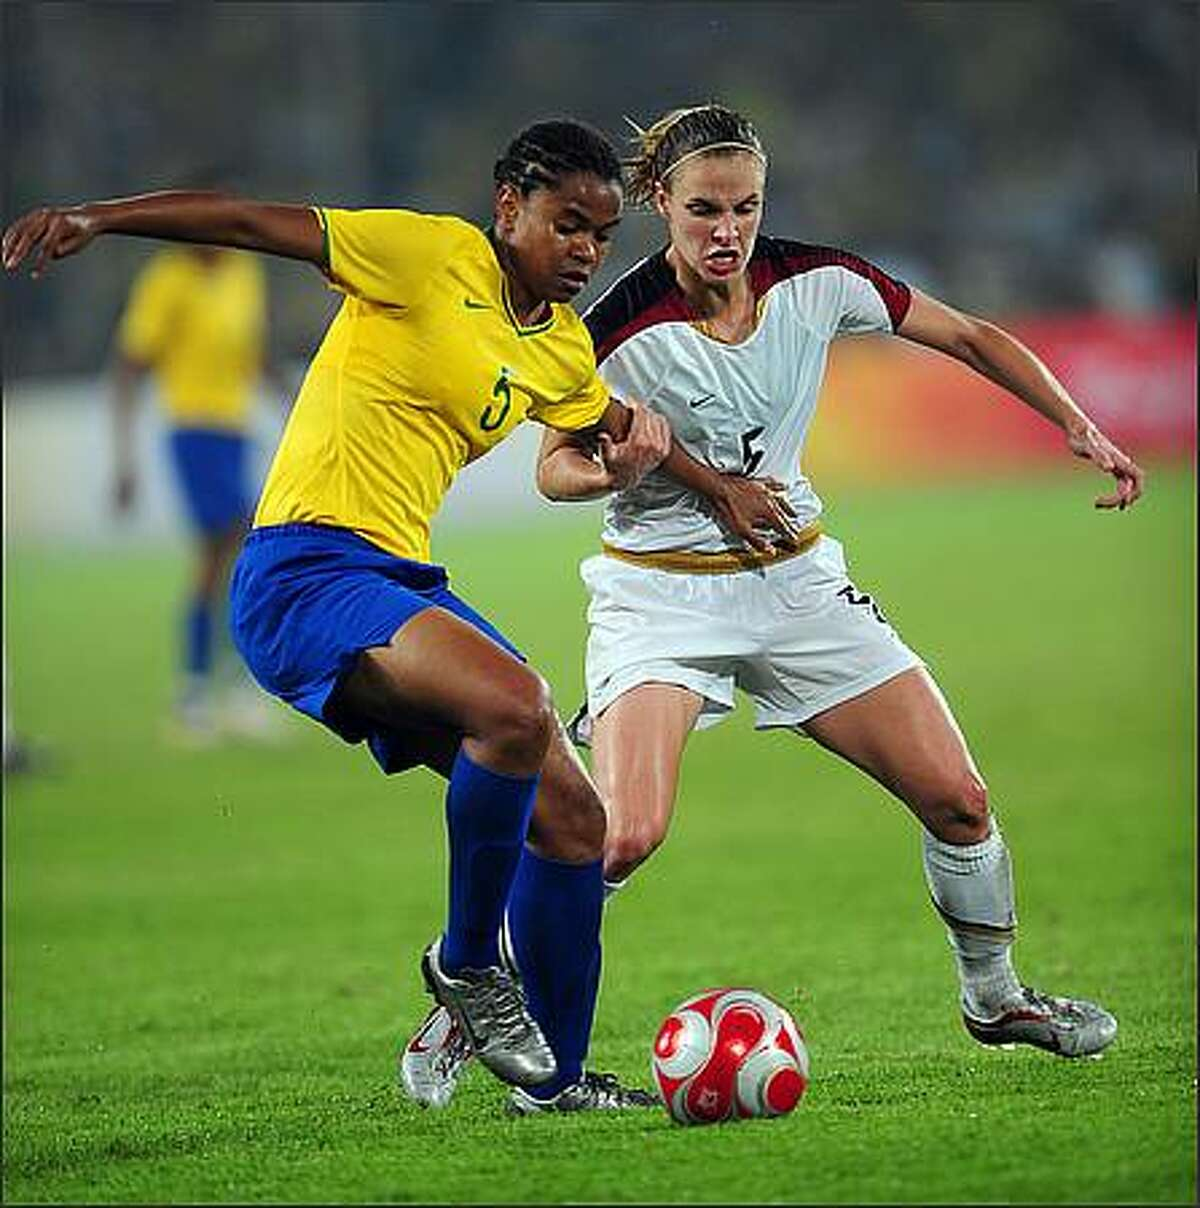 Renata Costa (L) of Brazil vies with Lindsay Tarpley from US during the women's gold medal football match in the 2008 Beijing Olympic Games in Beijing.